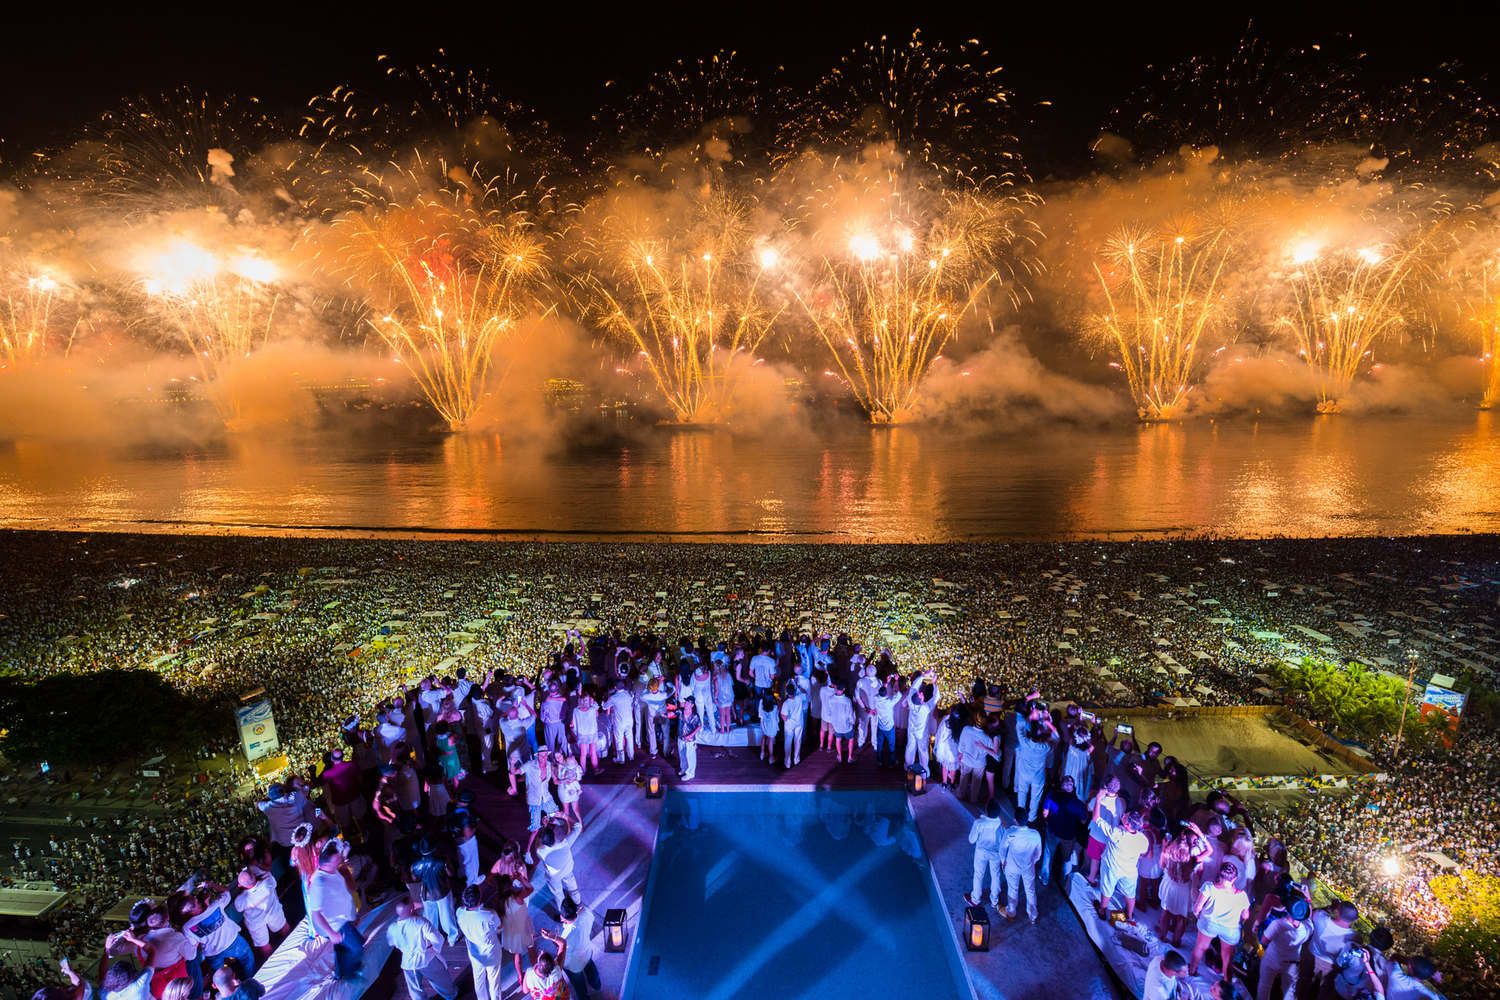 New Year's Eve traditions in Spain and Latin America